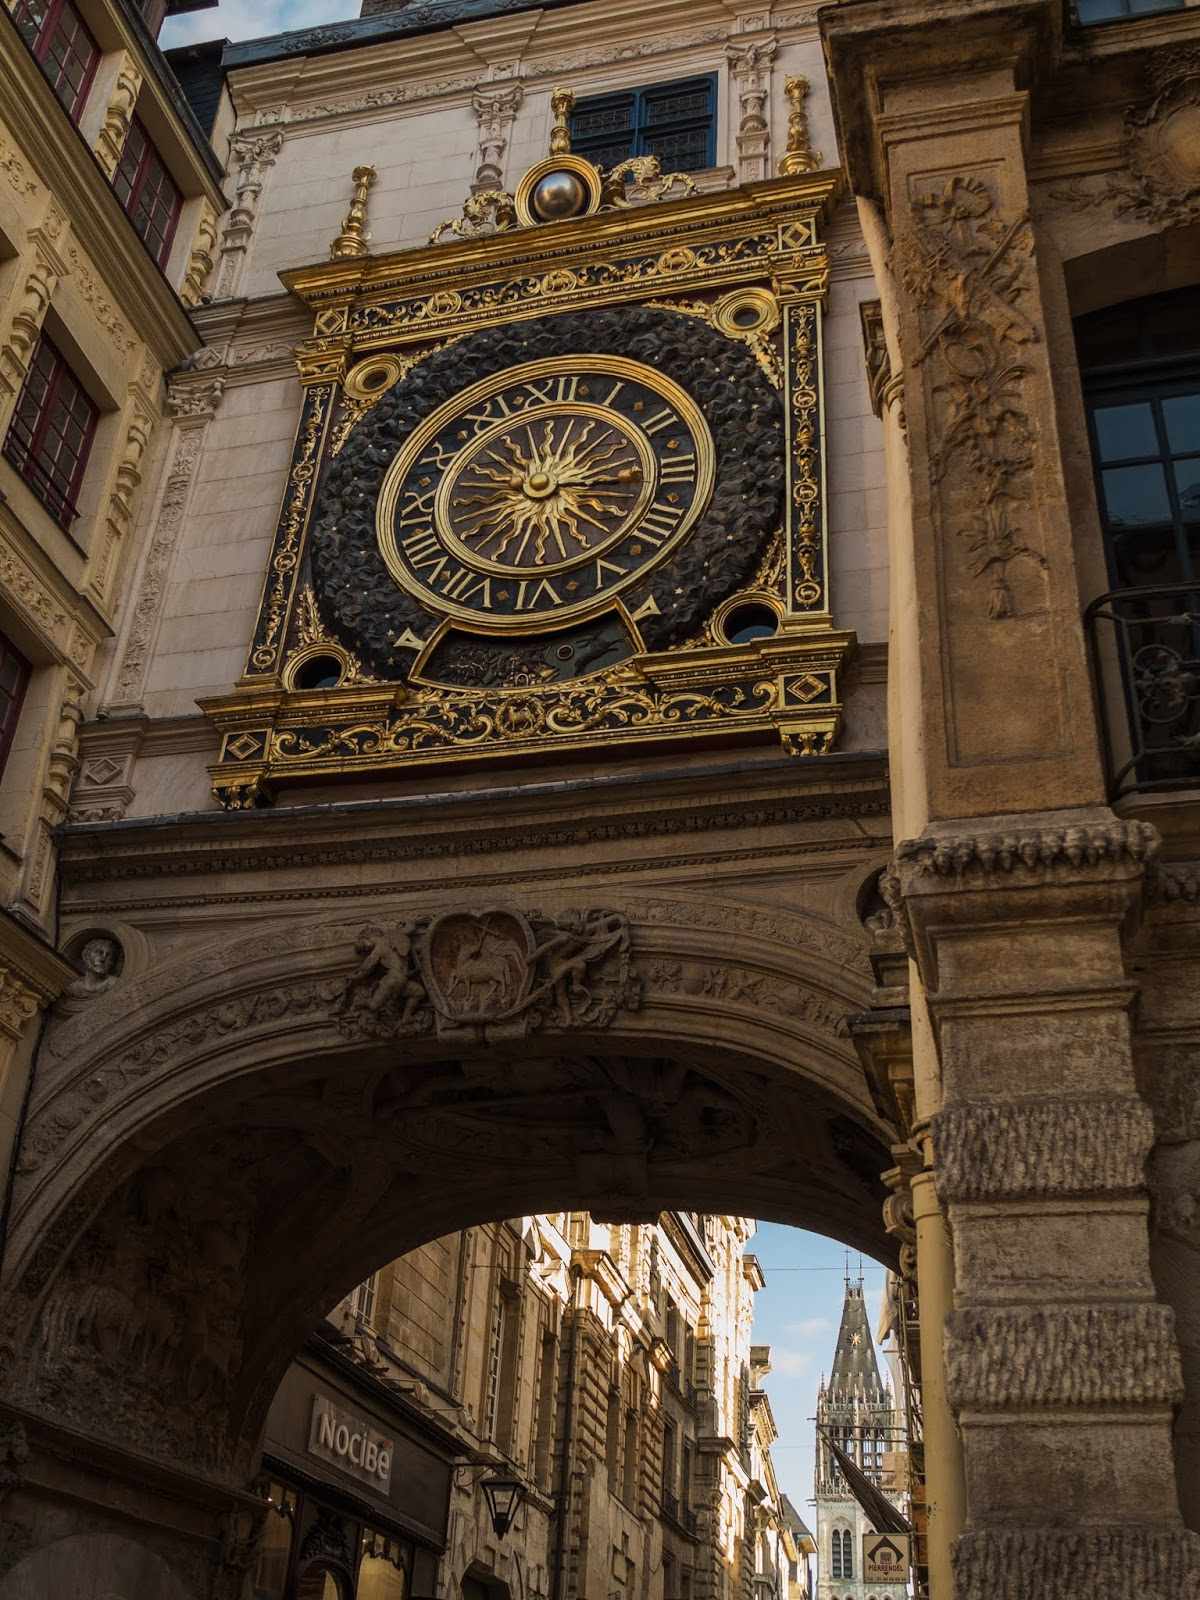 The Gros Horloge above an archway in Rouen, France.